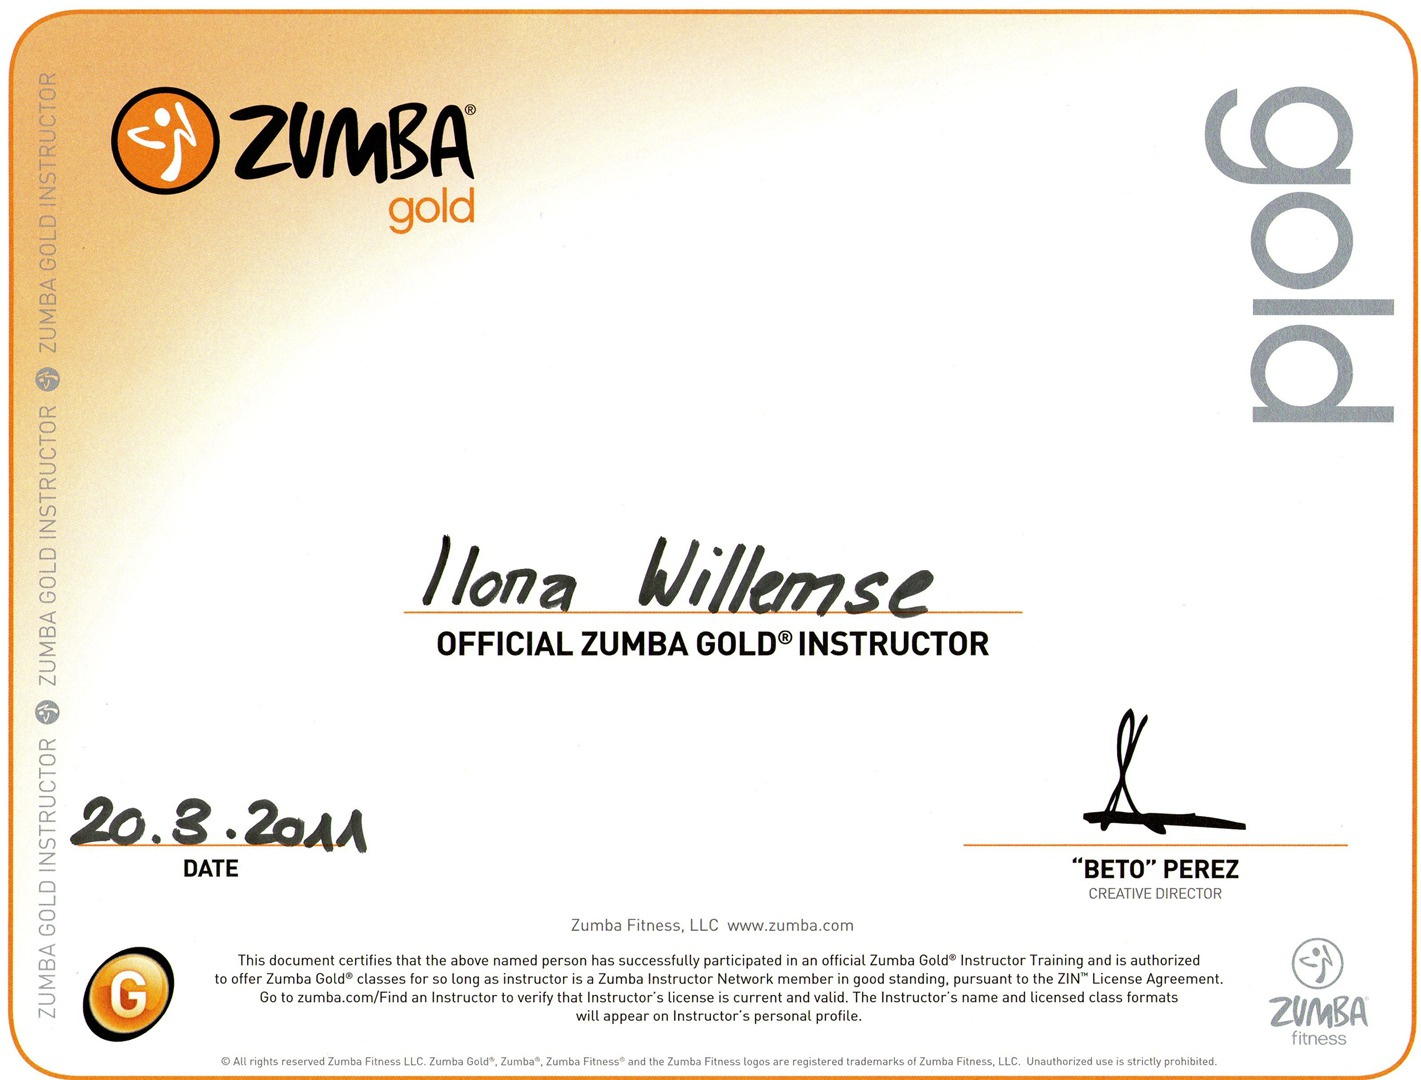 Zumba Malta About Steps Diagram Fitness Toning Gold Kids Aqua And The Logo Are Registered Trademarks Of